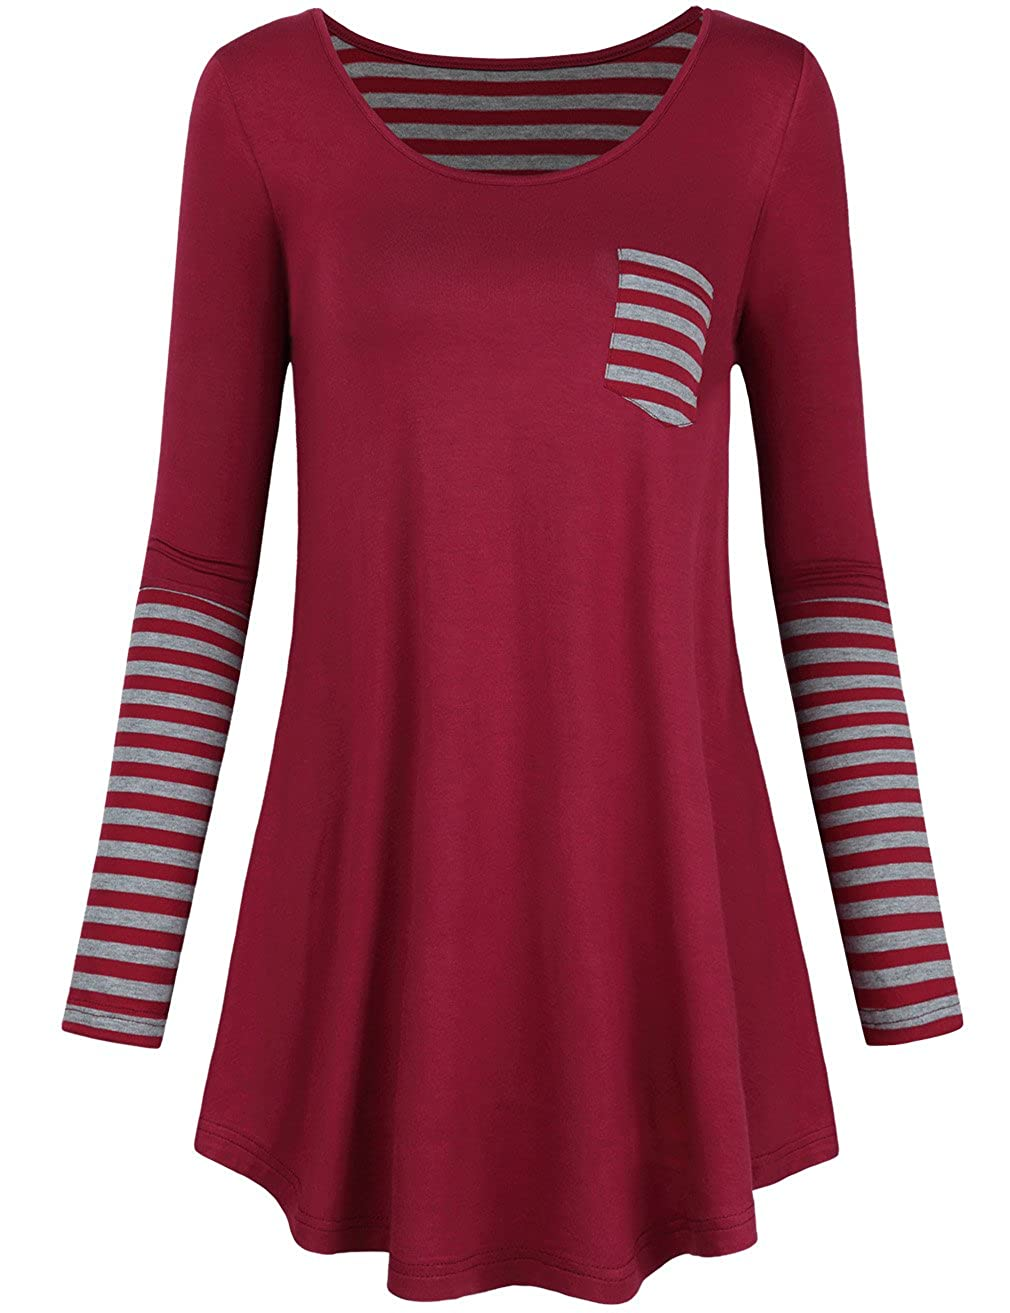 EMVANV Women's Soft Casual Back and Sleeve Stripe A-Line T Shirt Dress Tunic Top 022*USFBAAM00050[USEM]